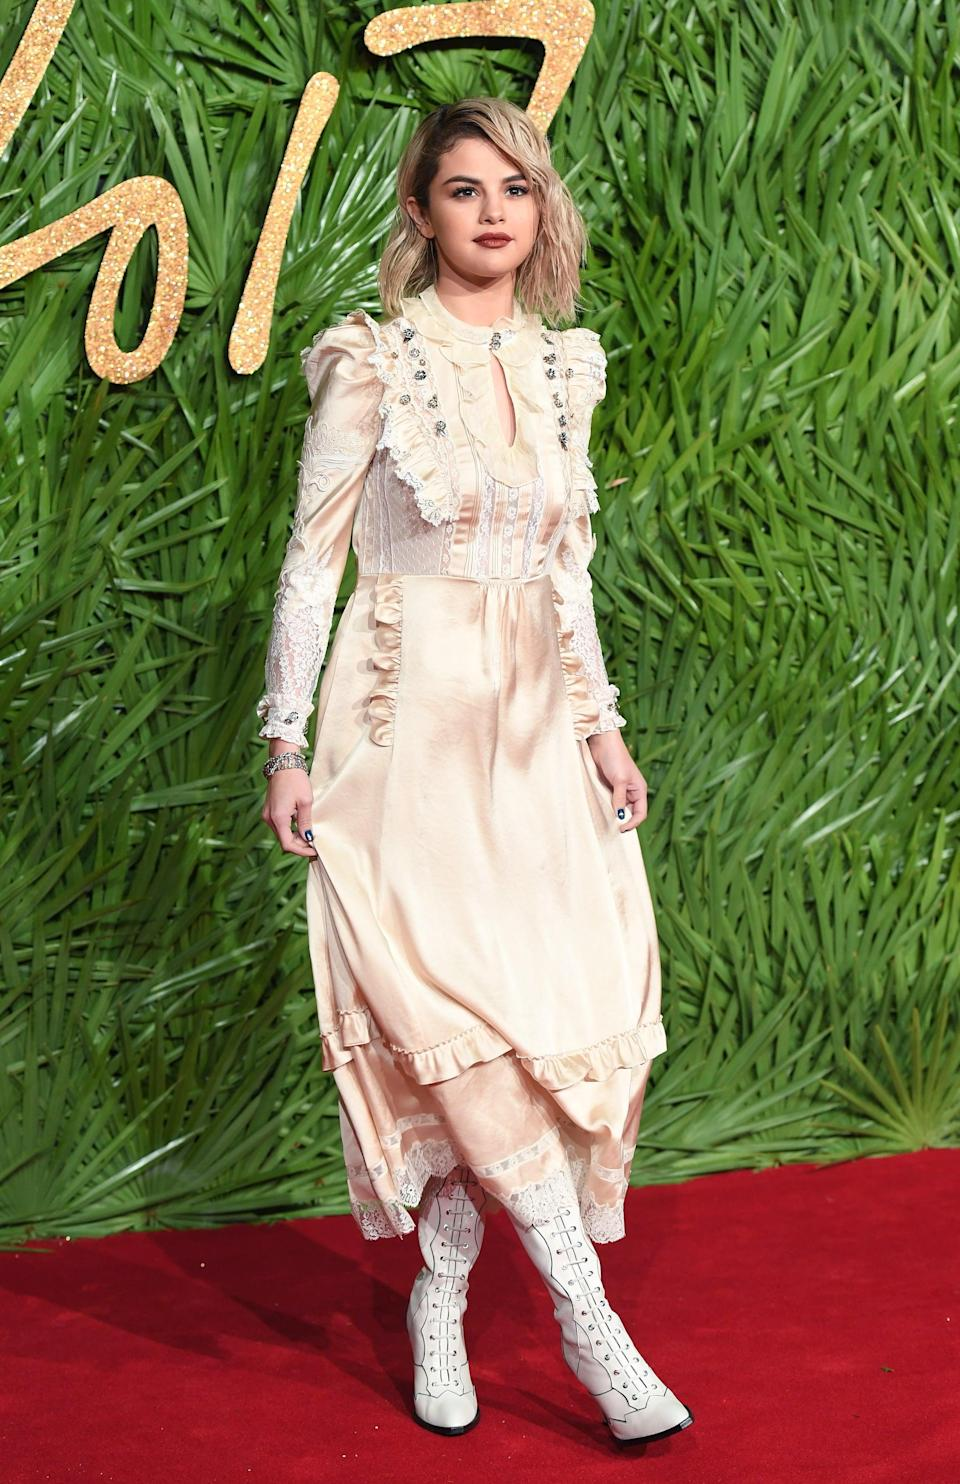 """<p><a href=""""https://www.popsugar.com/fashion/Selena-Gomez-Coach-Dress-Fashion-Awards-2017-44327073"""" class=""""link rapid-noclick-resp"""" rel=""""nofollow noopener"""" target=""""_blank"""" data-ylk=""""slk:Selena wore a full-on custom Coach look"""">Selena wore a full-on custom Coach look</a> by Stuart Vevers for the Fashion Awards 2017 in London in December 2017. She picked up her Victorian-inspired dress to reveal white hot leather lace-up boots, which we could imagine with a denim skirt and tee, too.</p>"""